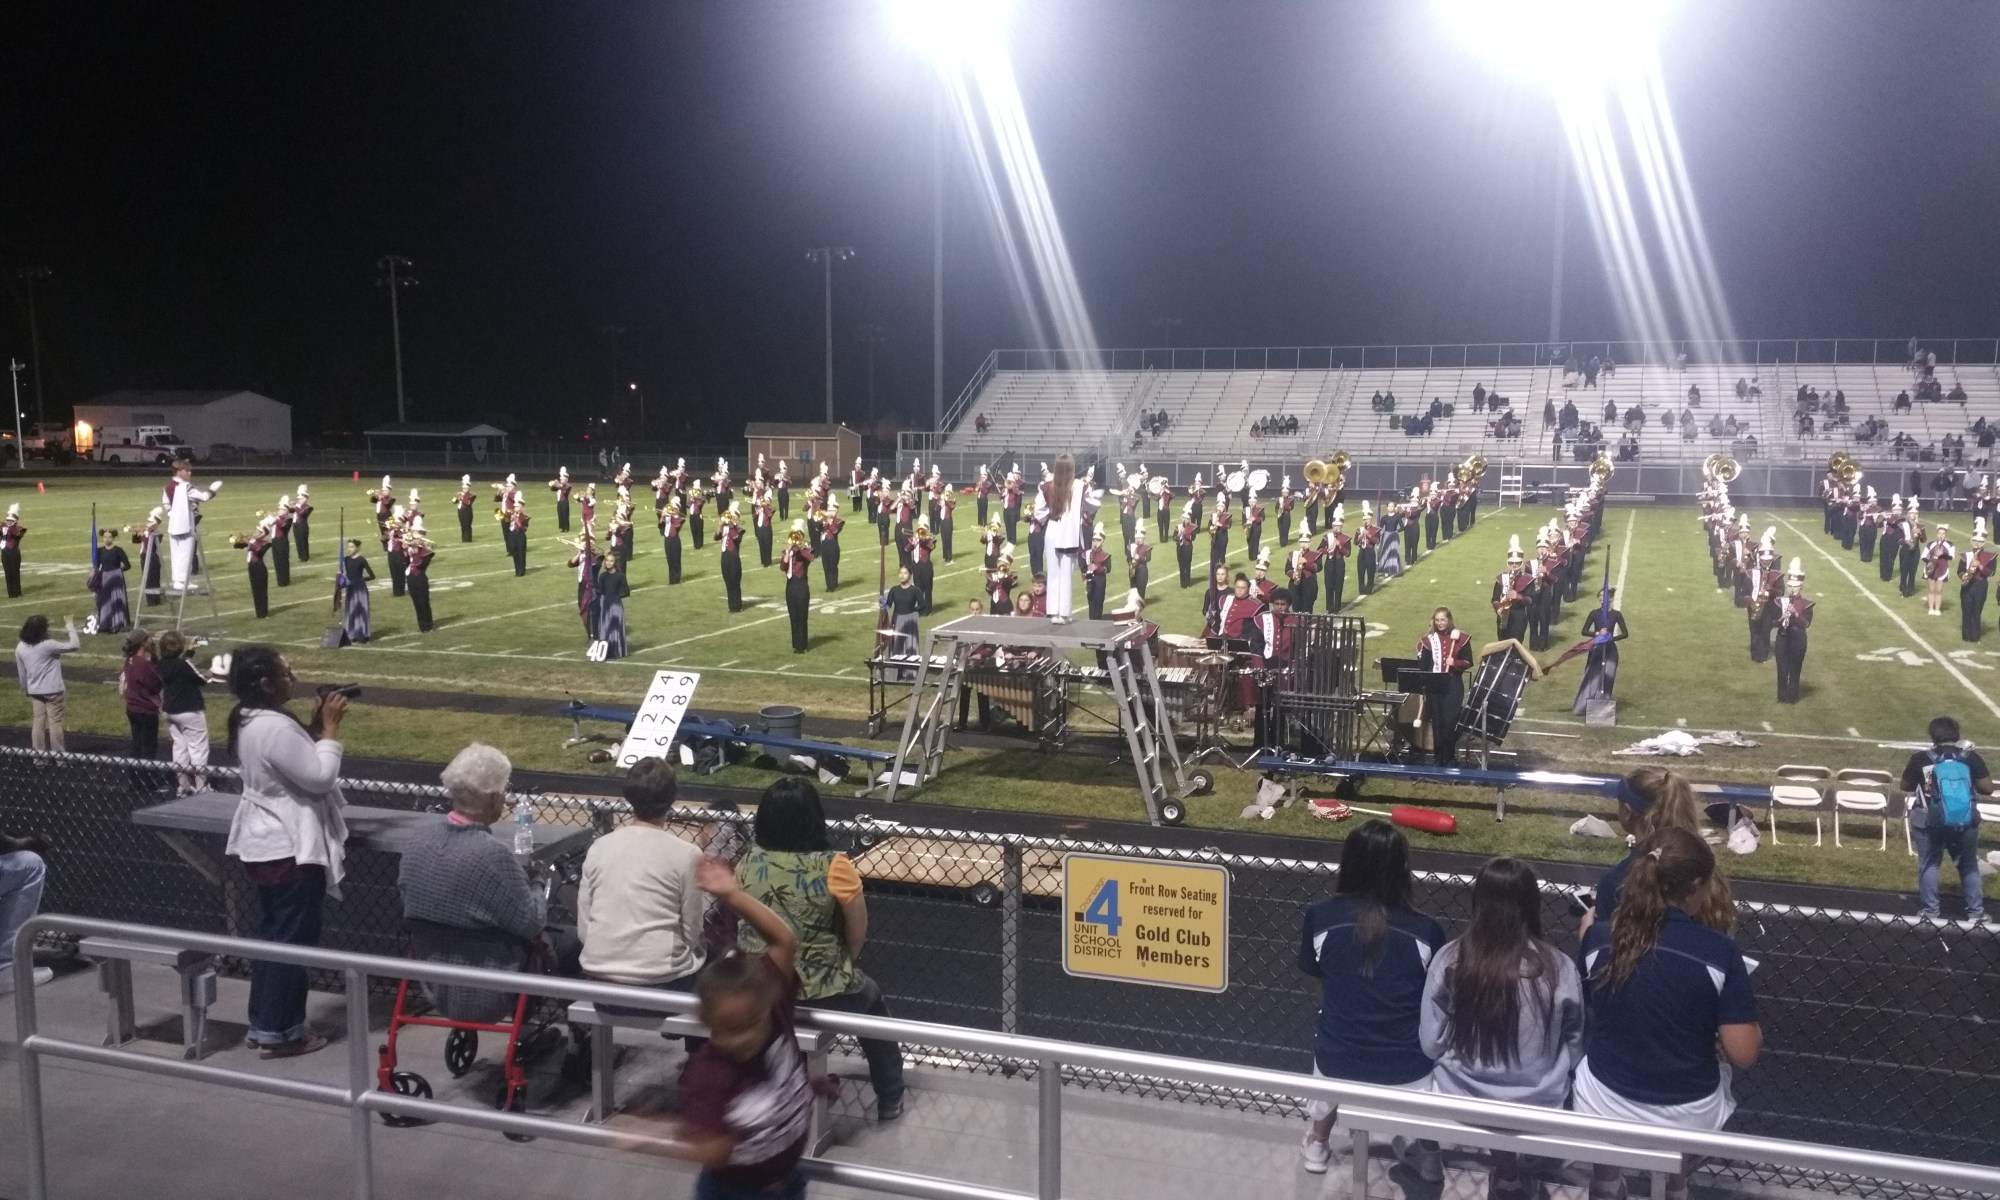 Marching band on field being abducted by aliens.